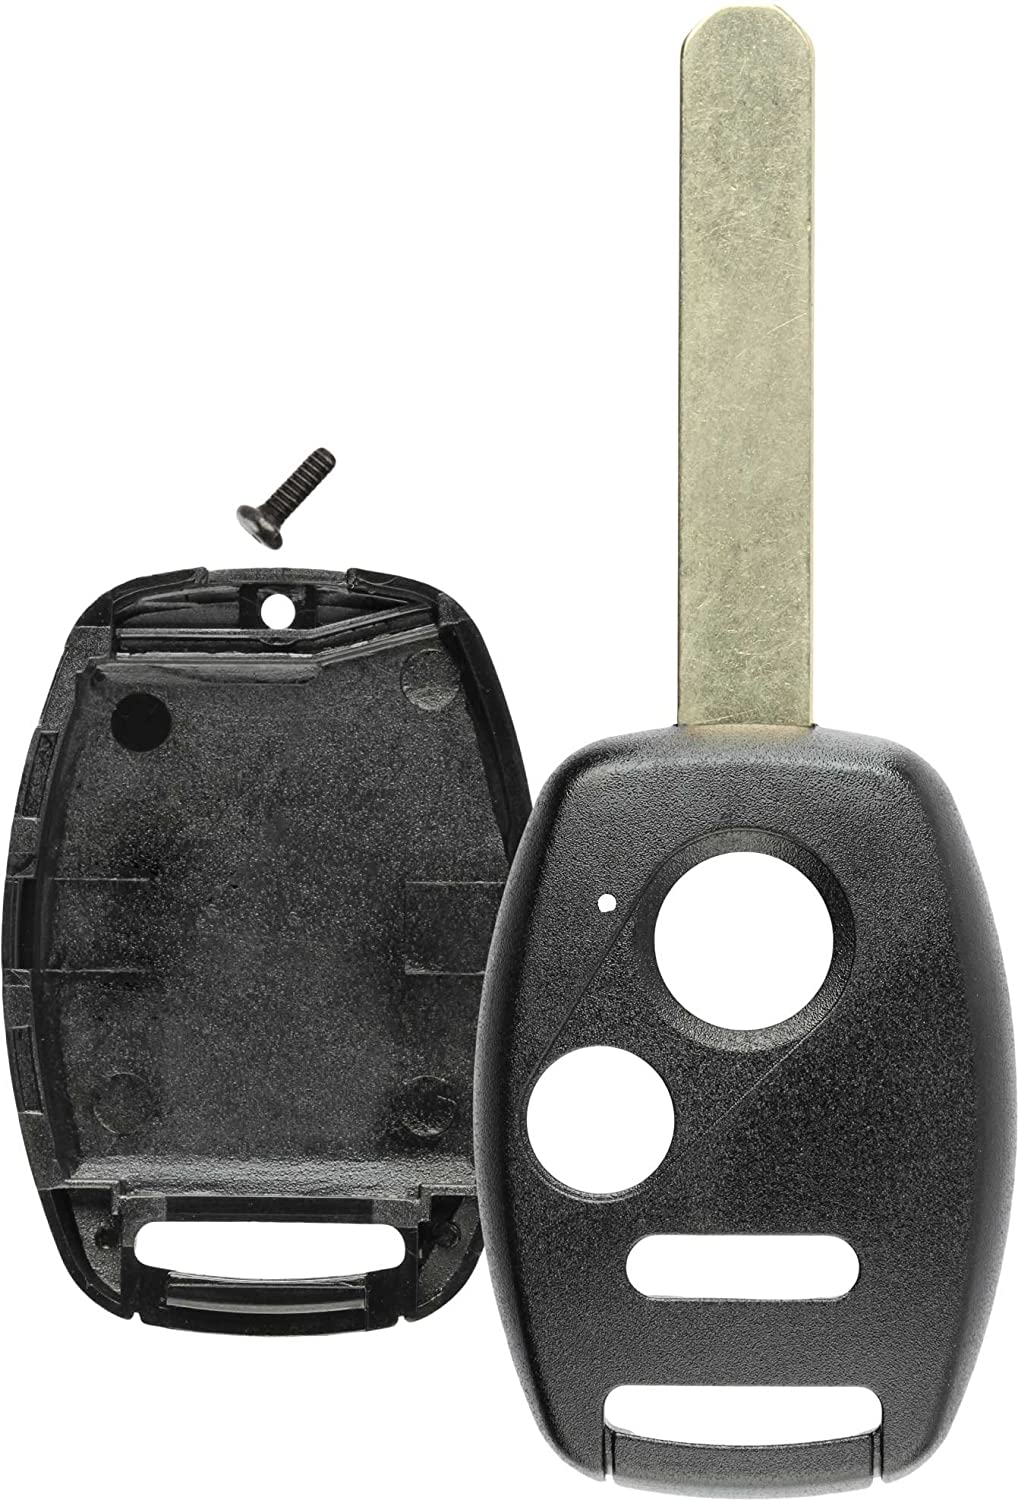 OUCG8D-380H-A LYSB00L4HRDJO-ELECTRNCS Discount Keyless Replacement Uncut Key Shell Case Compatible with CWTWB1U545